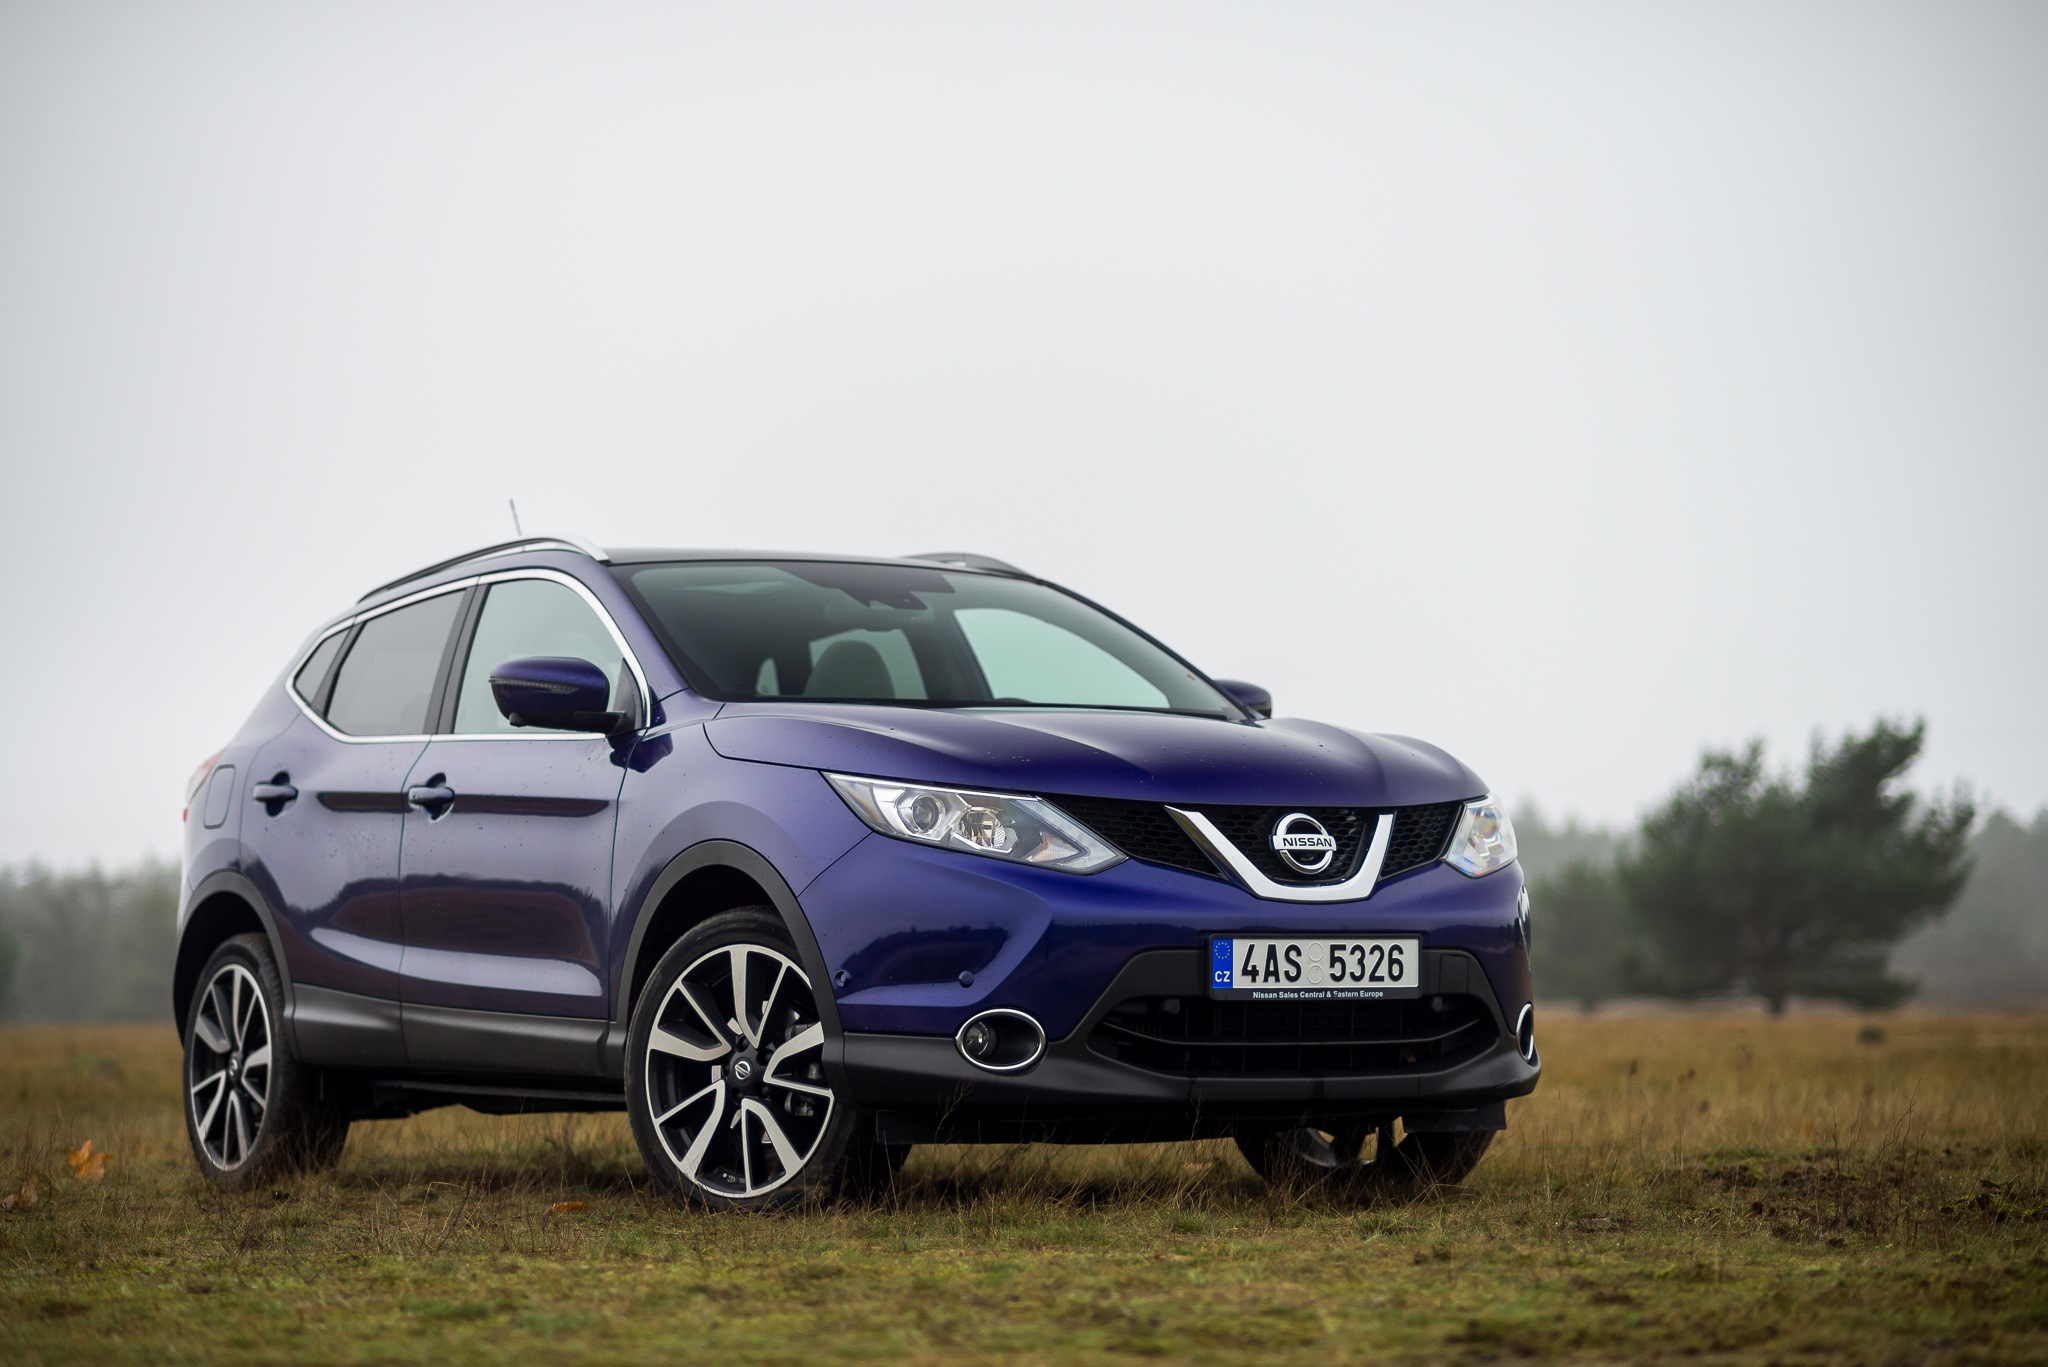 nissan qashqai 1 6 dci 4x4 tekna test project automotive. Black Bedroom Furniture Sets. Home Design Ideas